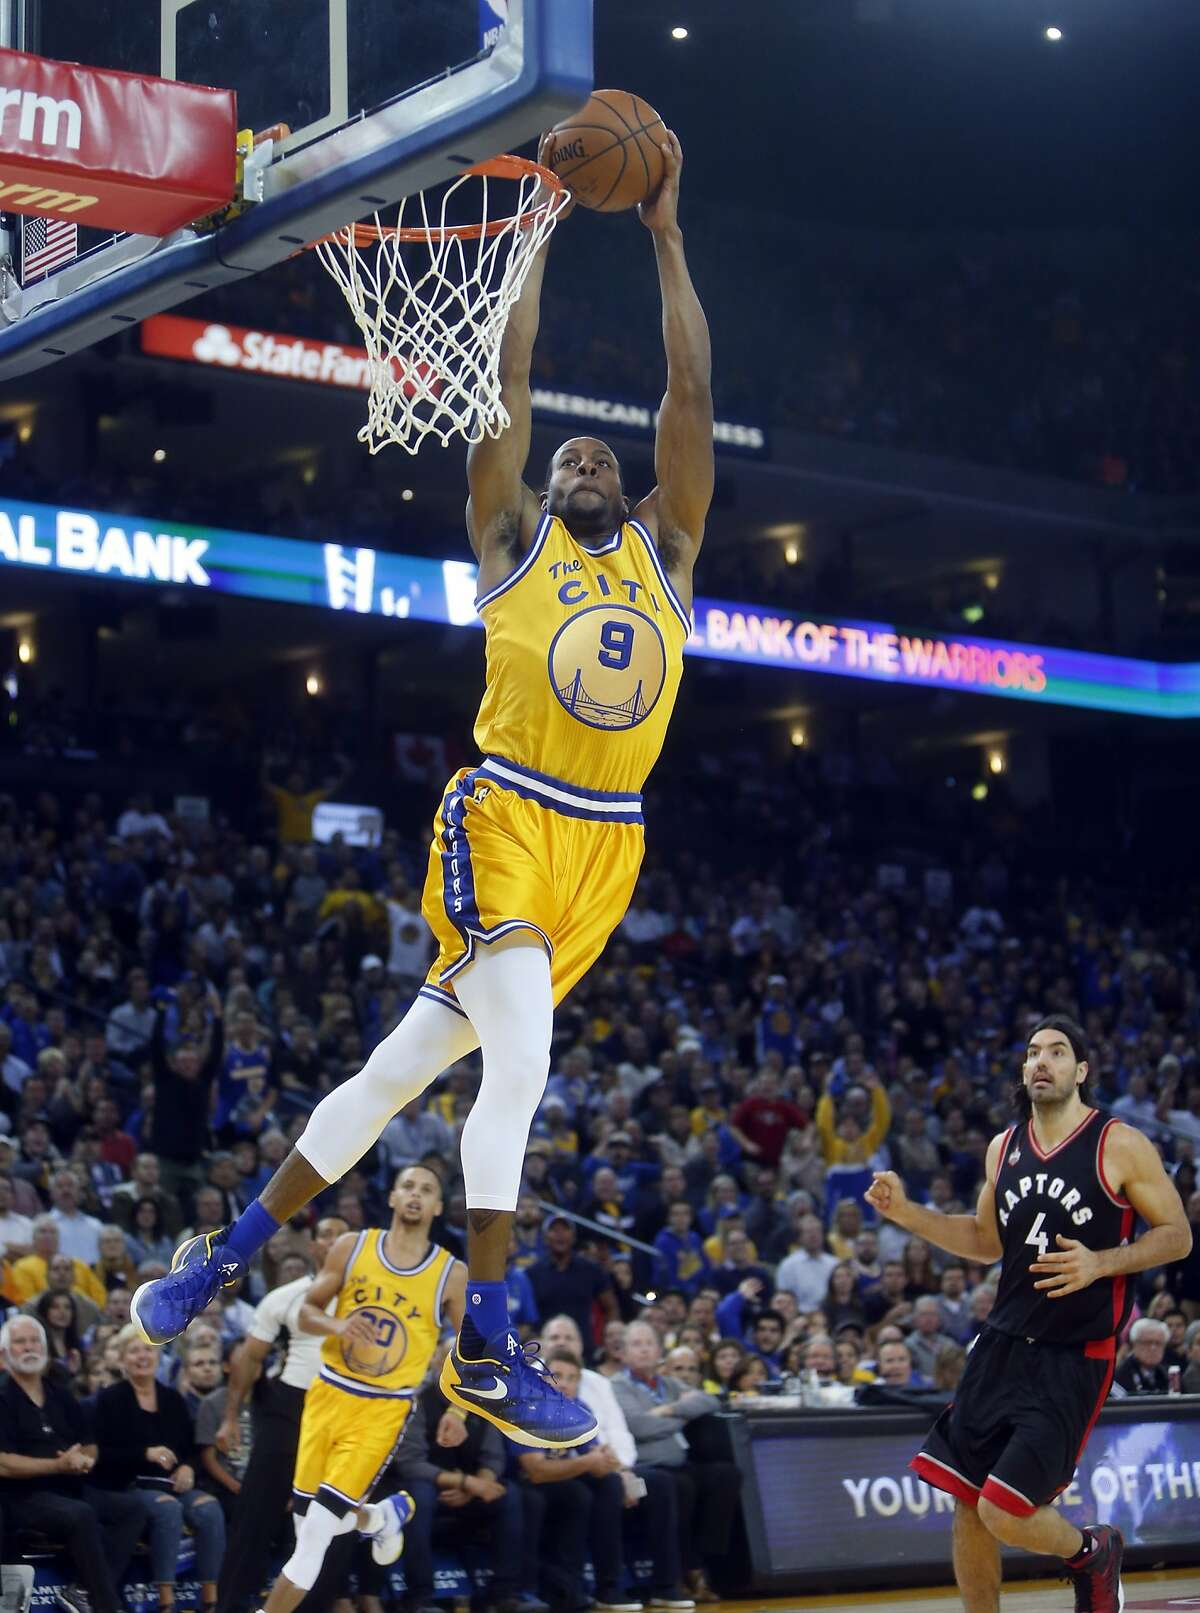 Golden State Warriors' Andre Iguodala dunks as Toronto Raptors' Luis Scola watches in 2nd quarter during NBA game at Oracle Arena in Oakland, Calif., on Tuesday, November 17, 2015.